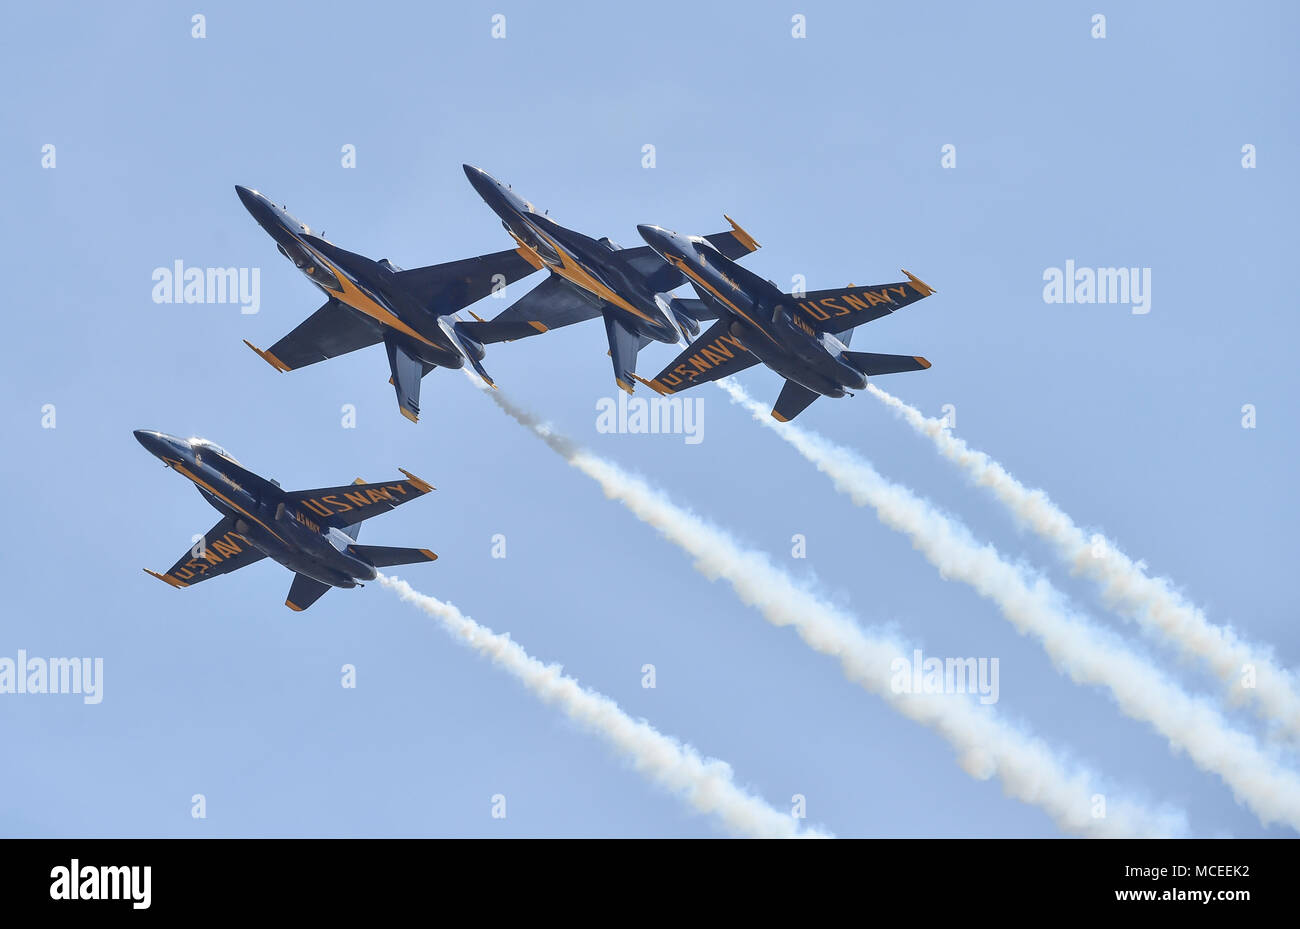 180412-N-NI474-2205  TUSCALOOSA, Ala. (April 12, 2018) The U.S. Navy flight demonstration squadron, the Blue Angels, Diamond pilots perform the Double Farvel maneuver during a practice demonstration for the Tuscaloosa Regional Air Show. The Blue Angels are scheduled to perform more than 60 demonstrations at more than 30 locations across the U.S. and Canada in 2018. (U.S. Navy photo by Mass Communication Specialist 1st Class Daniel M. Young/Released) - Stock Image